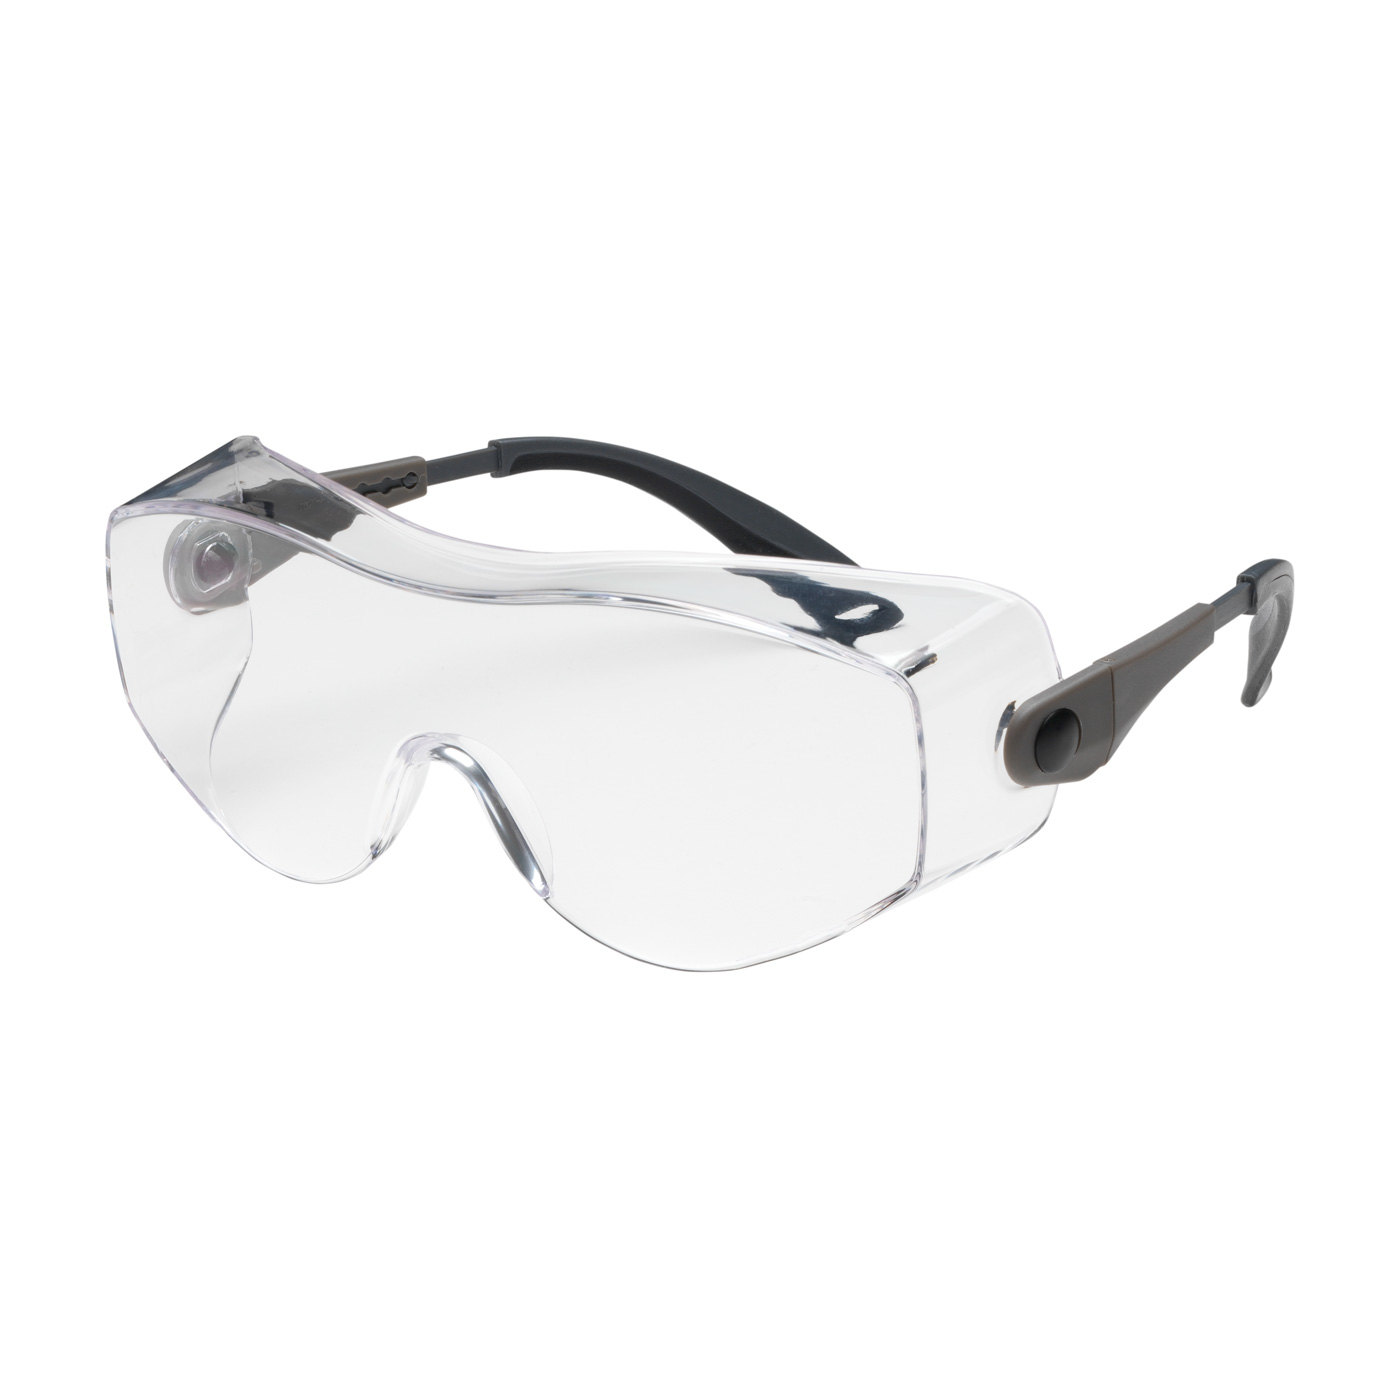 #250-98-0020 PIP OverSite™ OTG Rimless Safety Glasses with Black / Gray Temple, Clear Lens and Anti-Scratch/Fog Coating